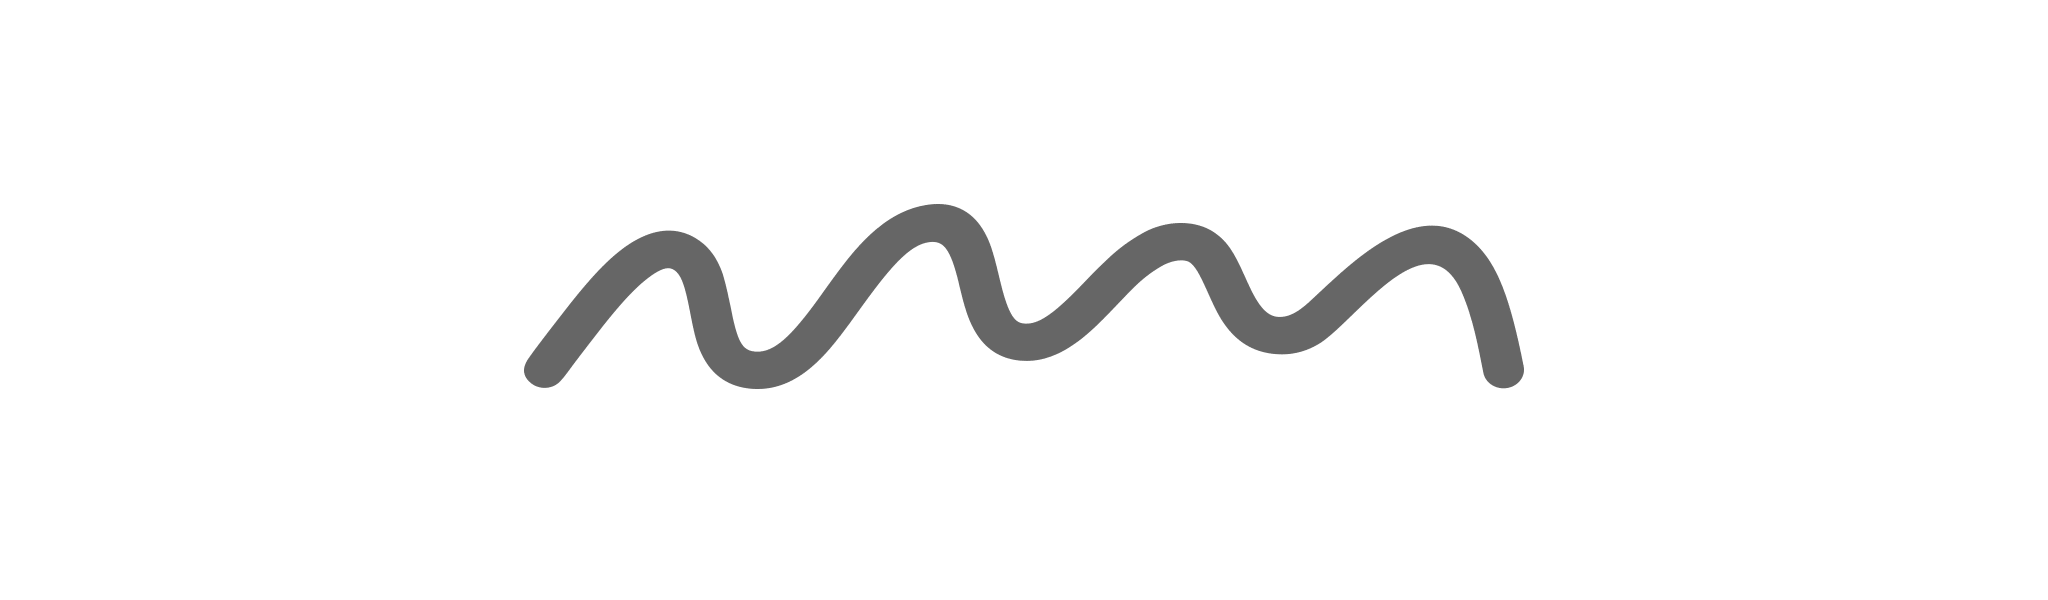 Squiggly line png. Personal branding marcus michaels